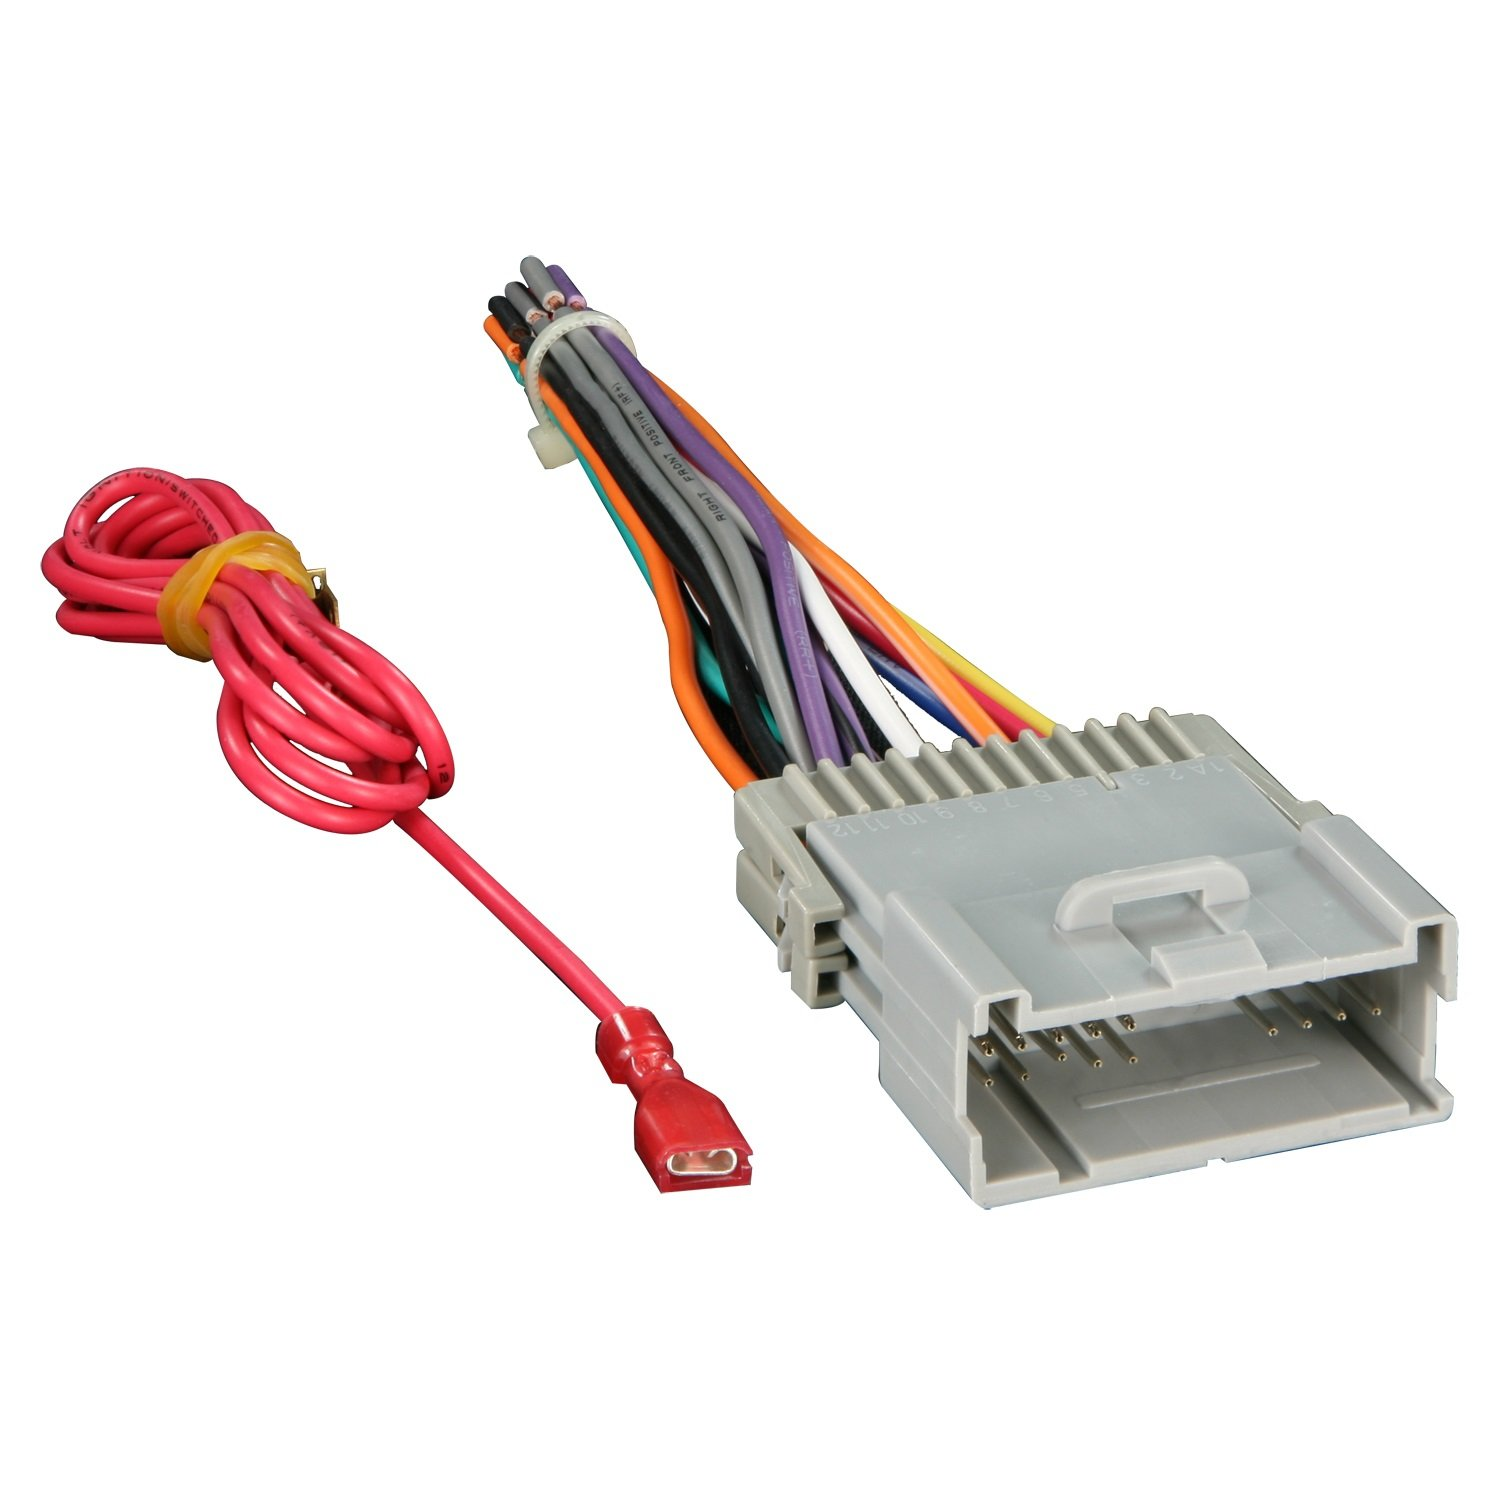 61eewxp9orL._SL1500_ amazon com metra 70 2003 radio wiring harness for gm 98 08 harness wire for car stereo at gsmx.co